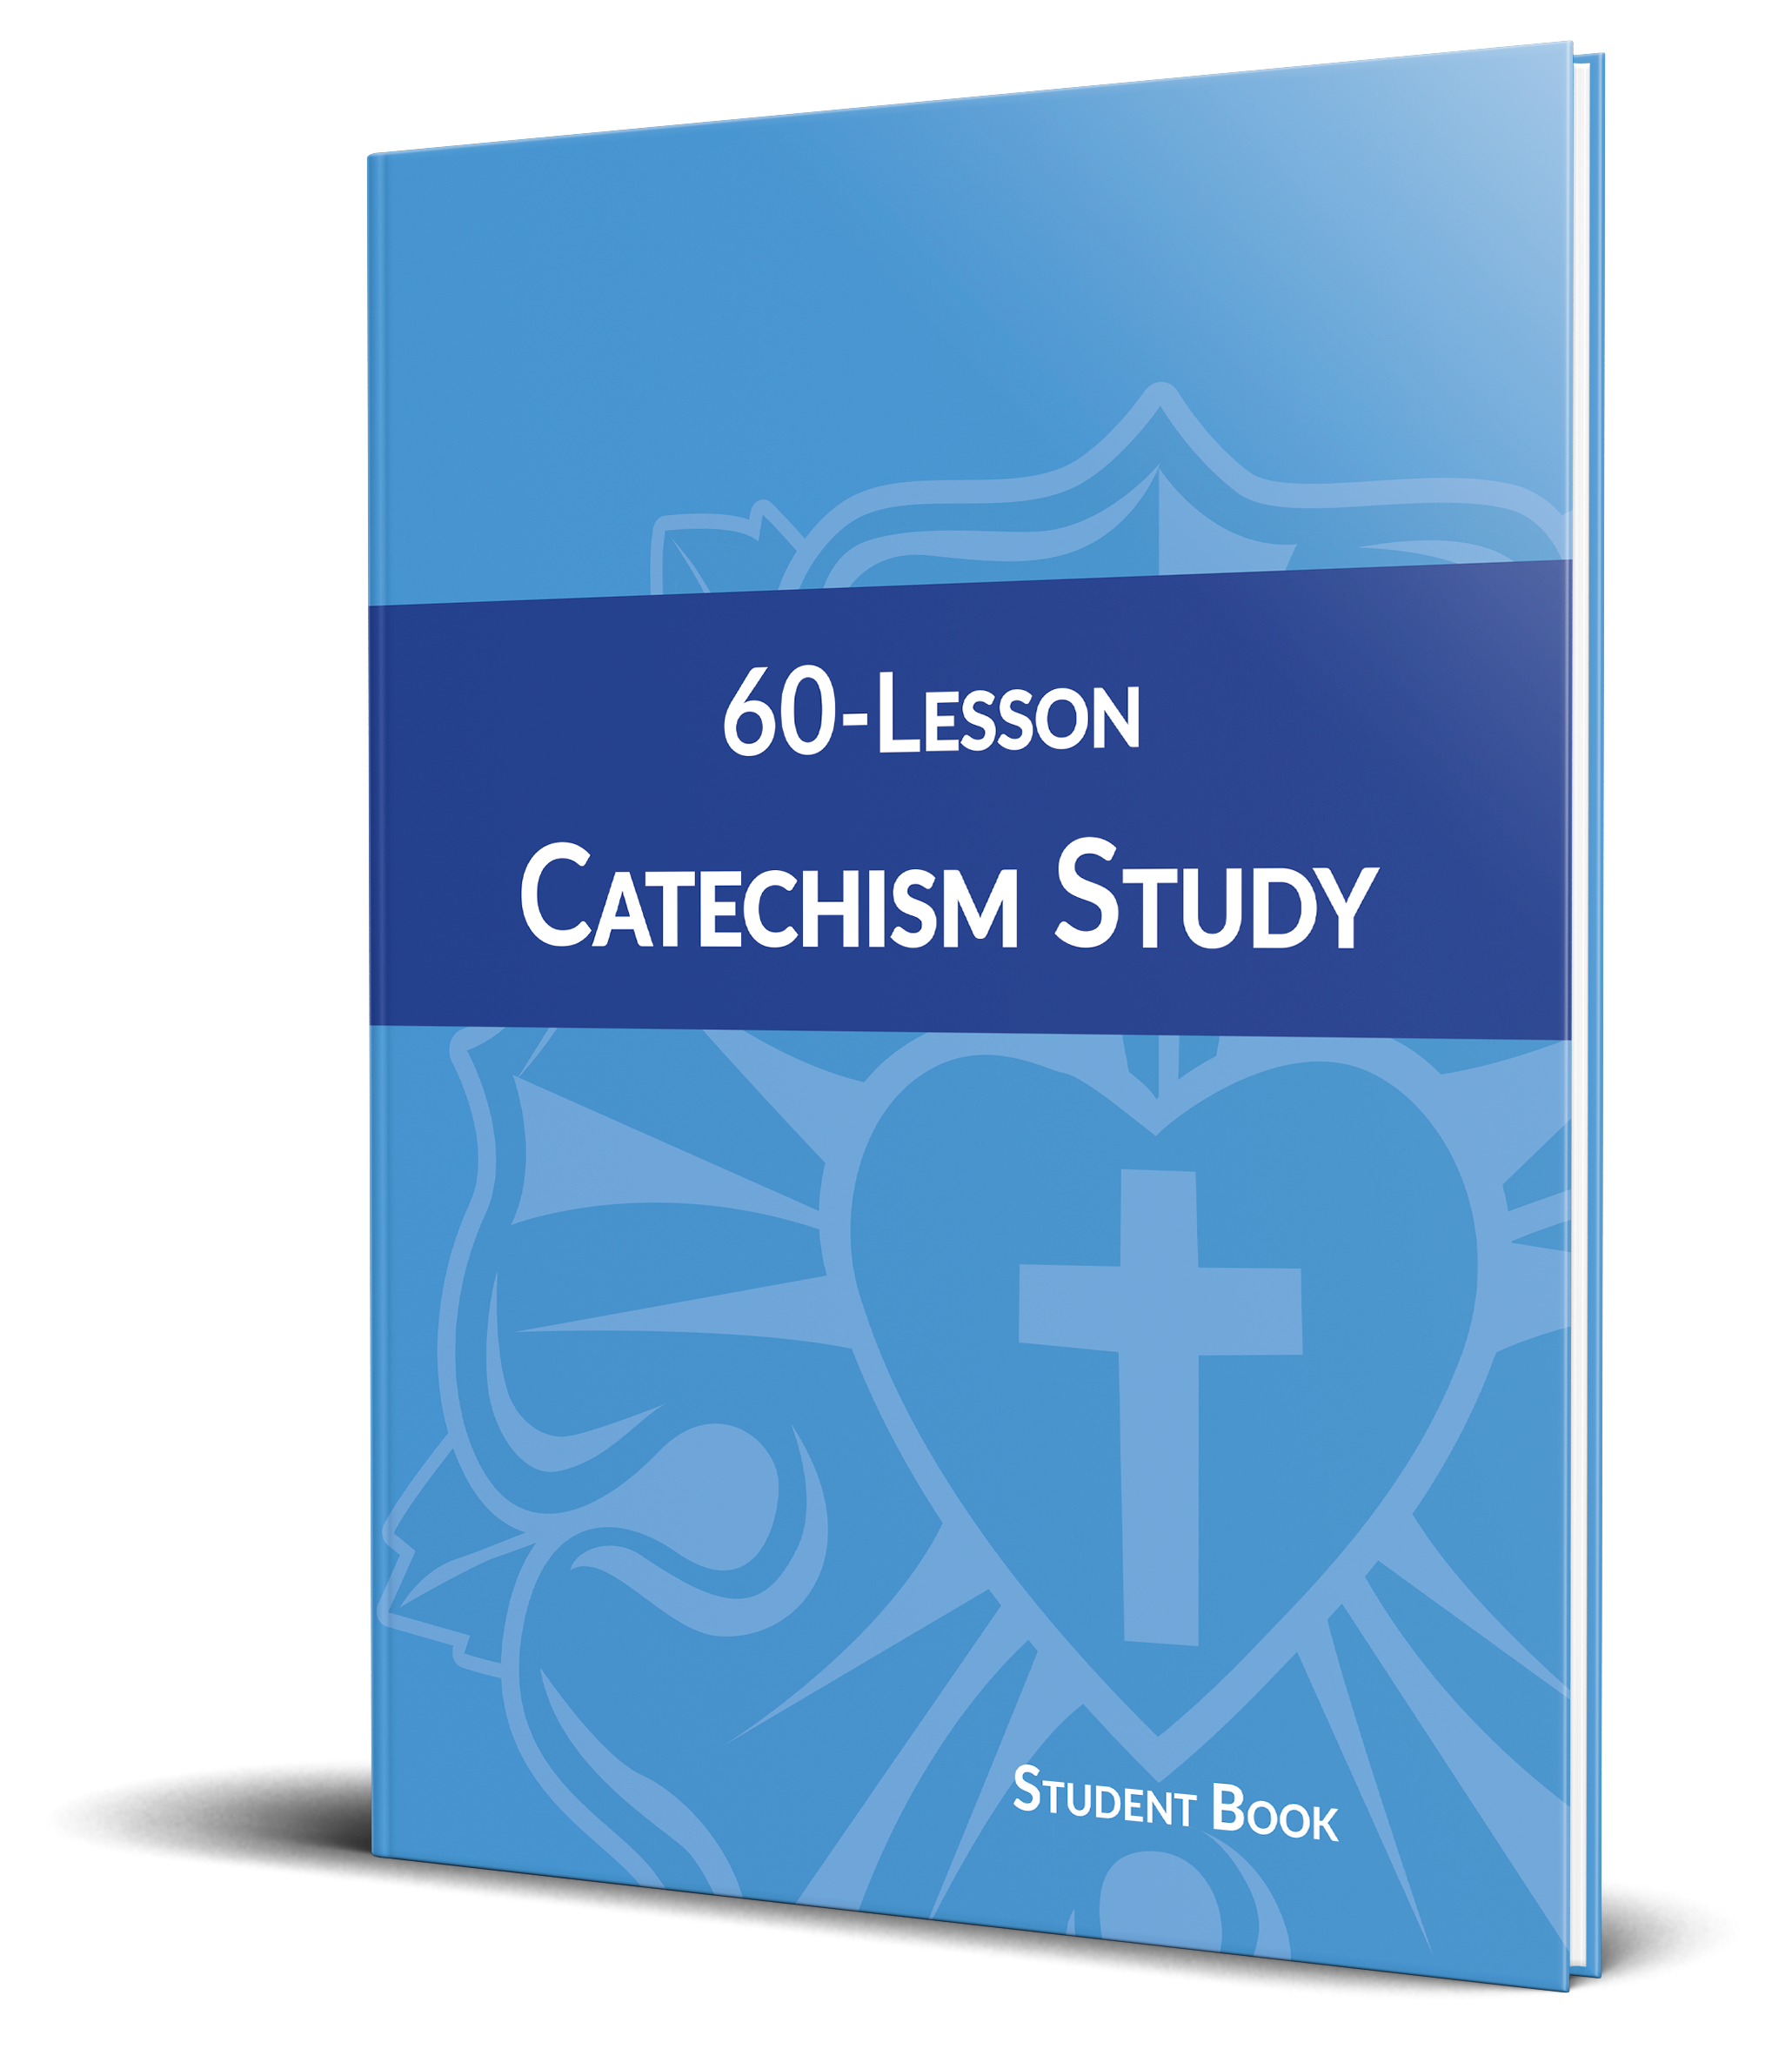 60 Lesson Catechism Study